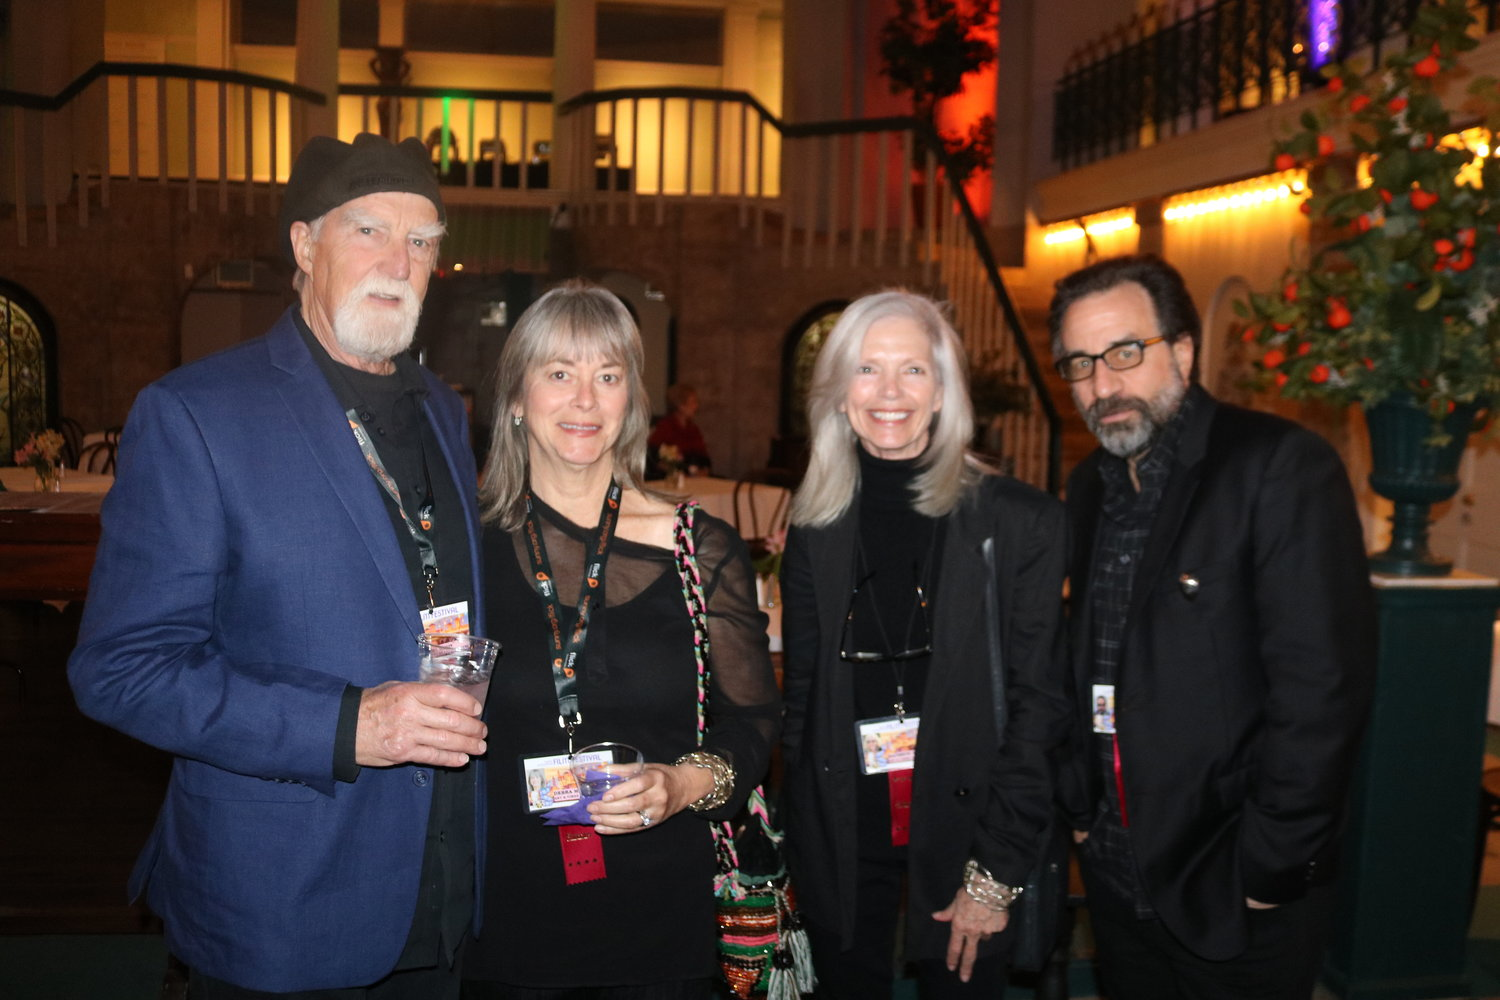 Artist and sculptor Frosty Myers, wife and producer Debra Myers, actress and producer Kathryn Witt and actor and writer, Ray Abruzzo